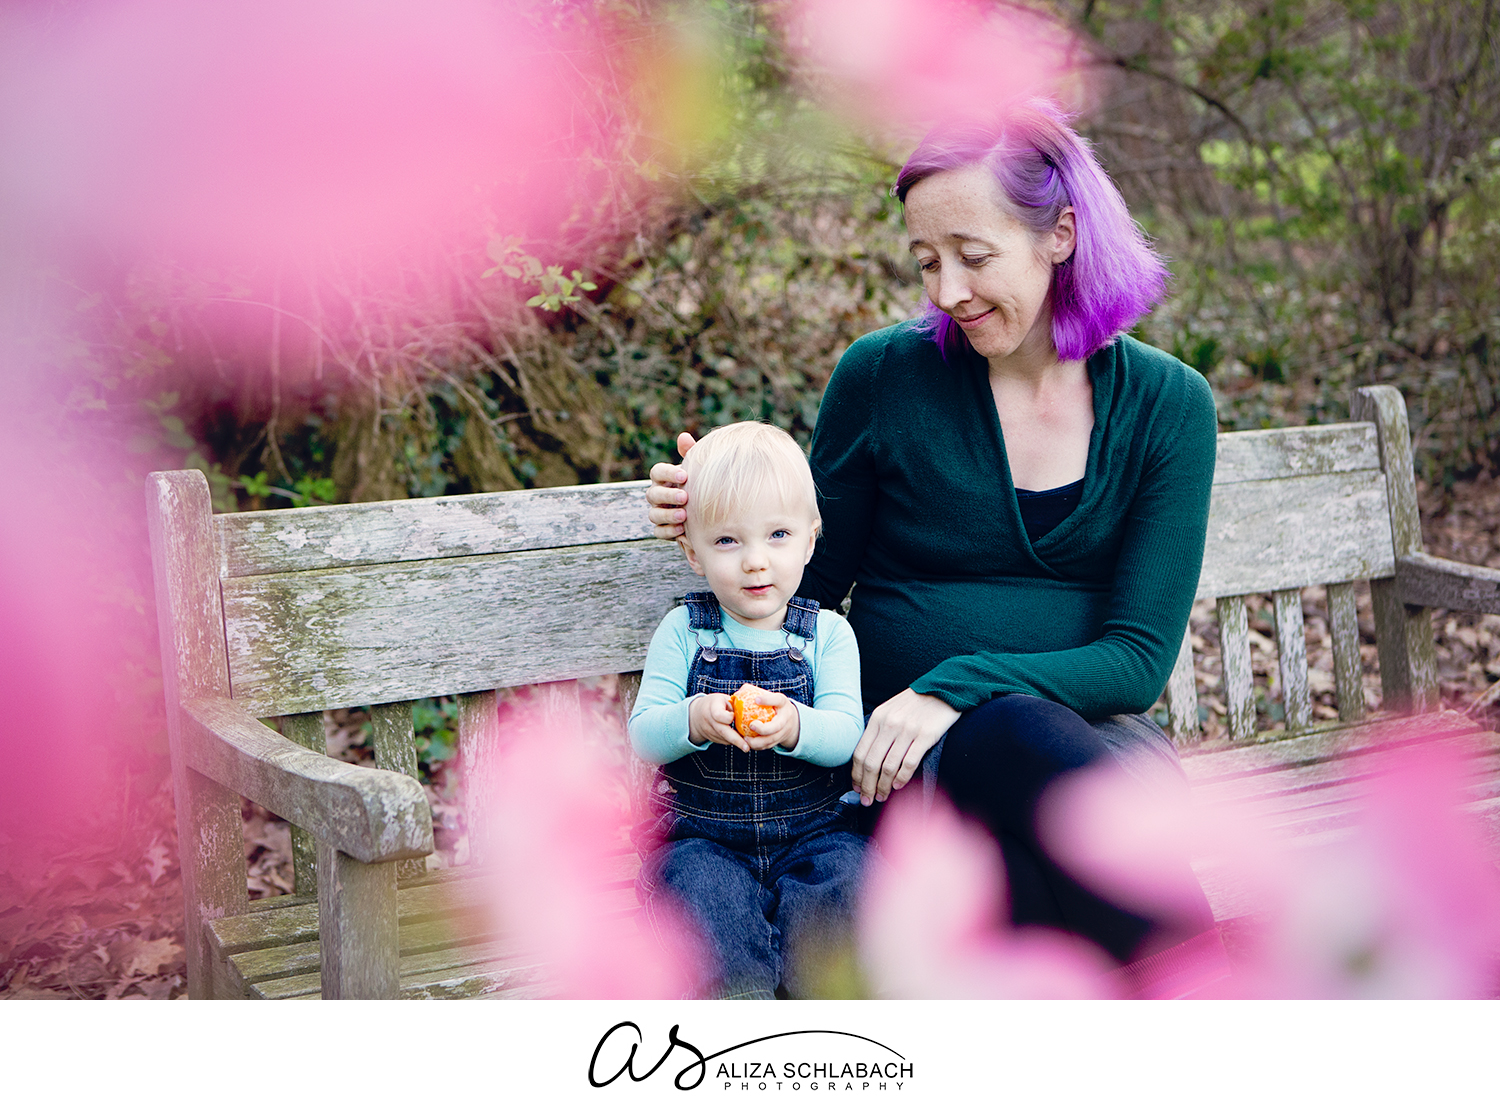 Photo of a mom with purple hair and her cute little boy through the spring blossoms